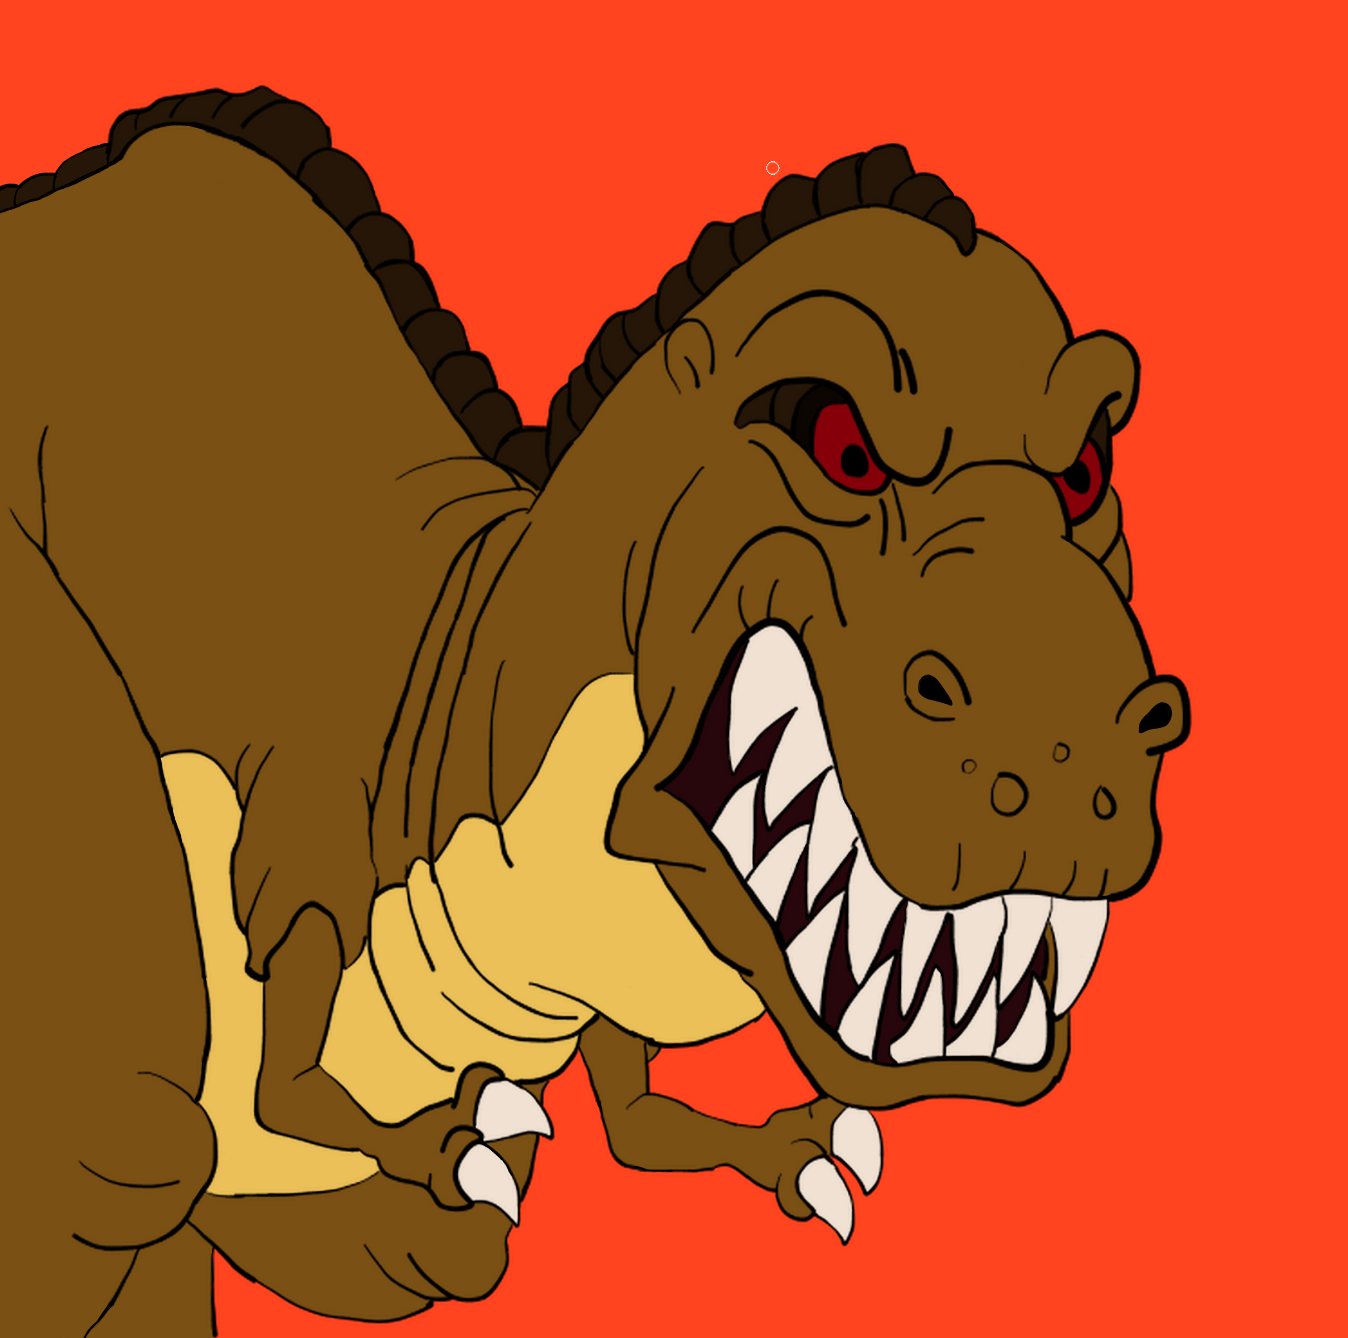 Papa Sharptooth Images - Reverse Search